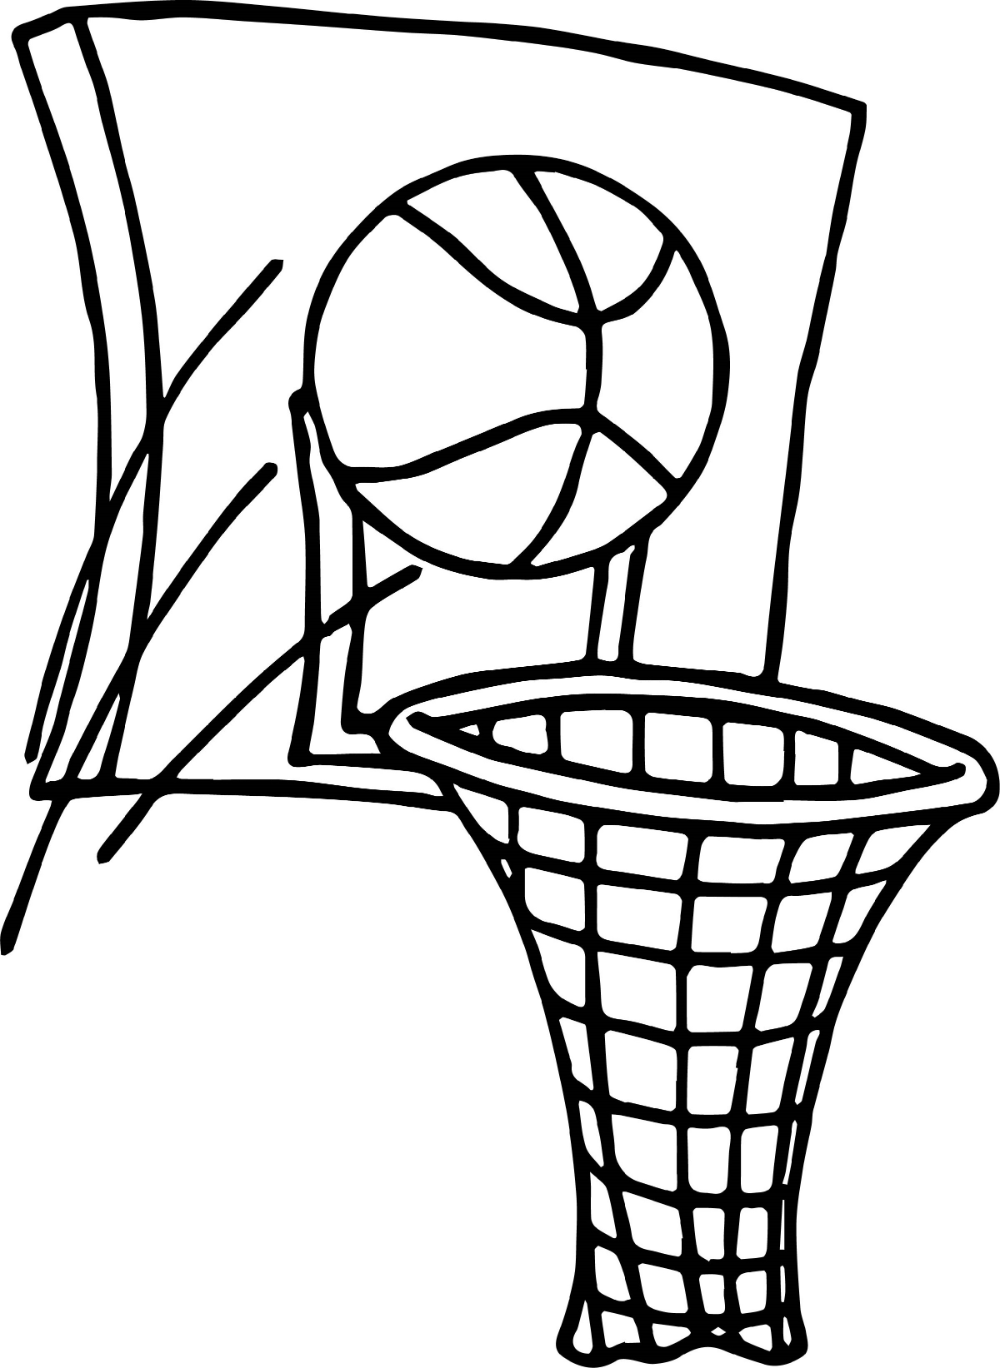 Basketball Coloring Pages Free Printable Sports Coloring Pages Beach Coloring Pages Coloring Pages